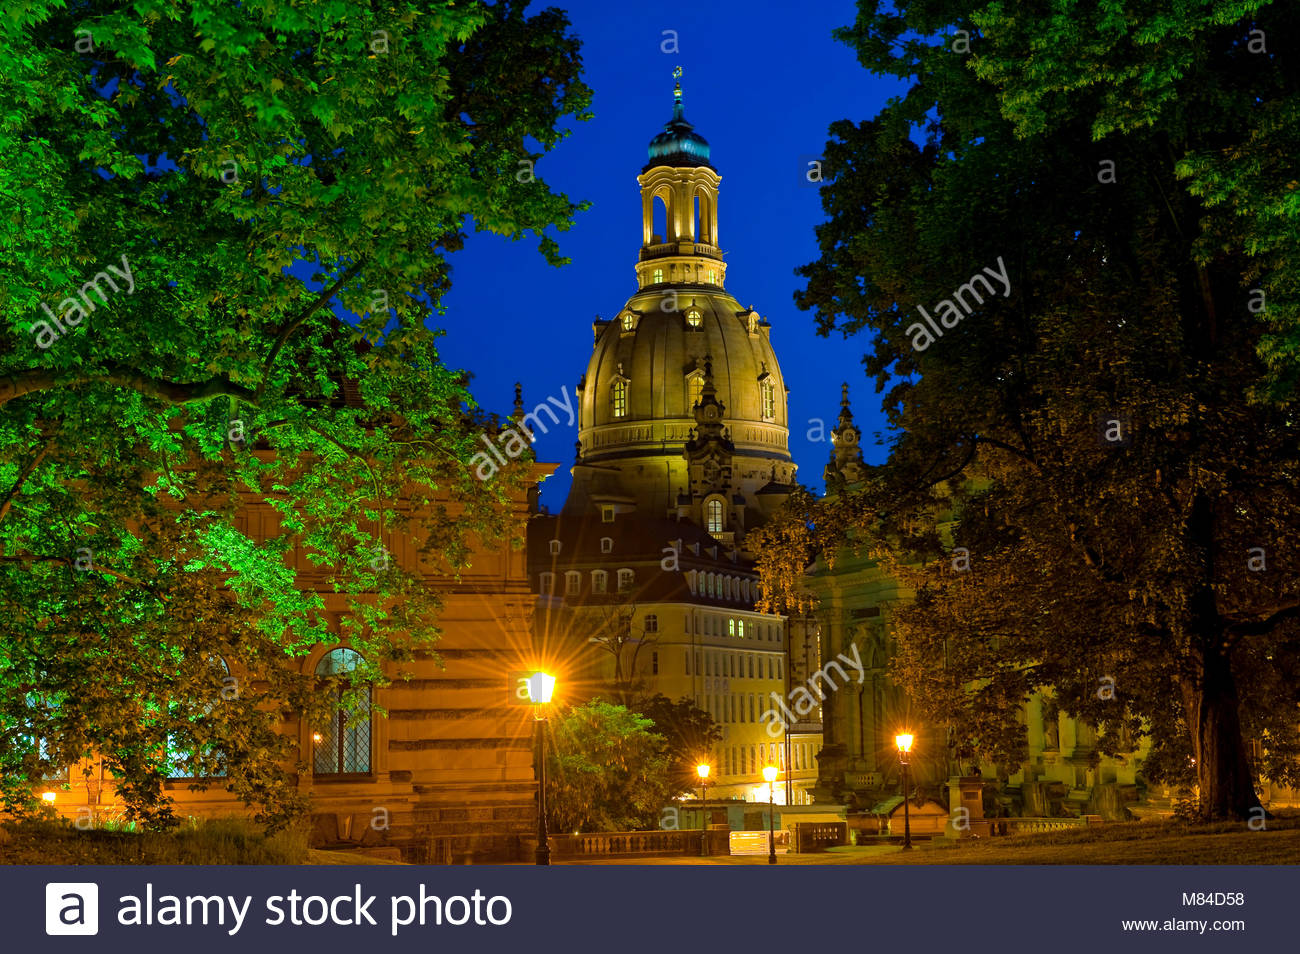 Europe, Germany, Dresden, Saxonia, Saxony. Dresdner Frauenkirche at night. - Stock Image